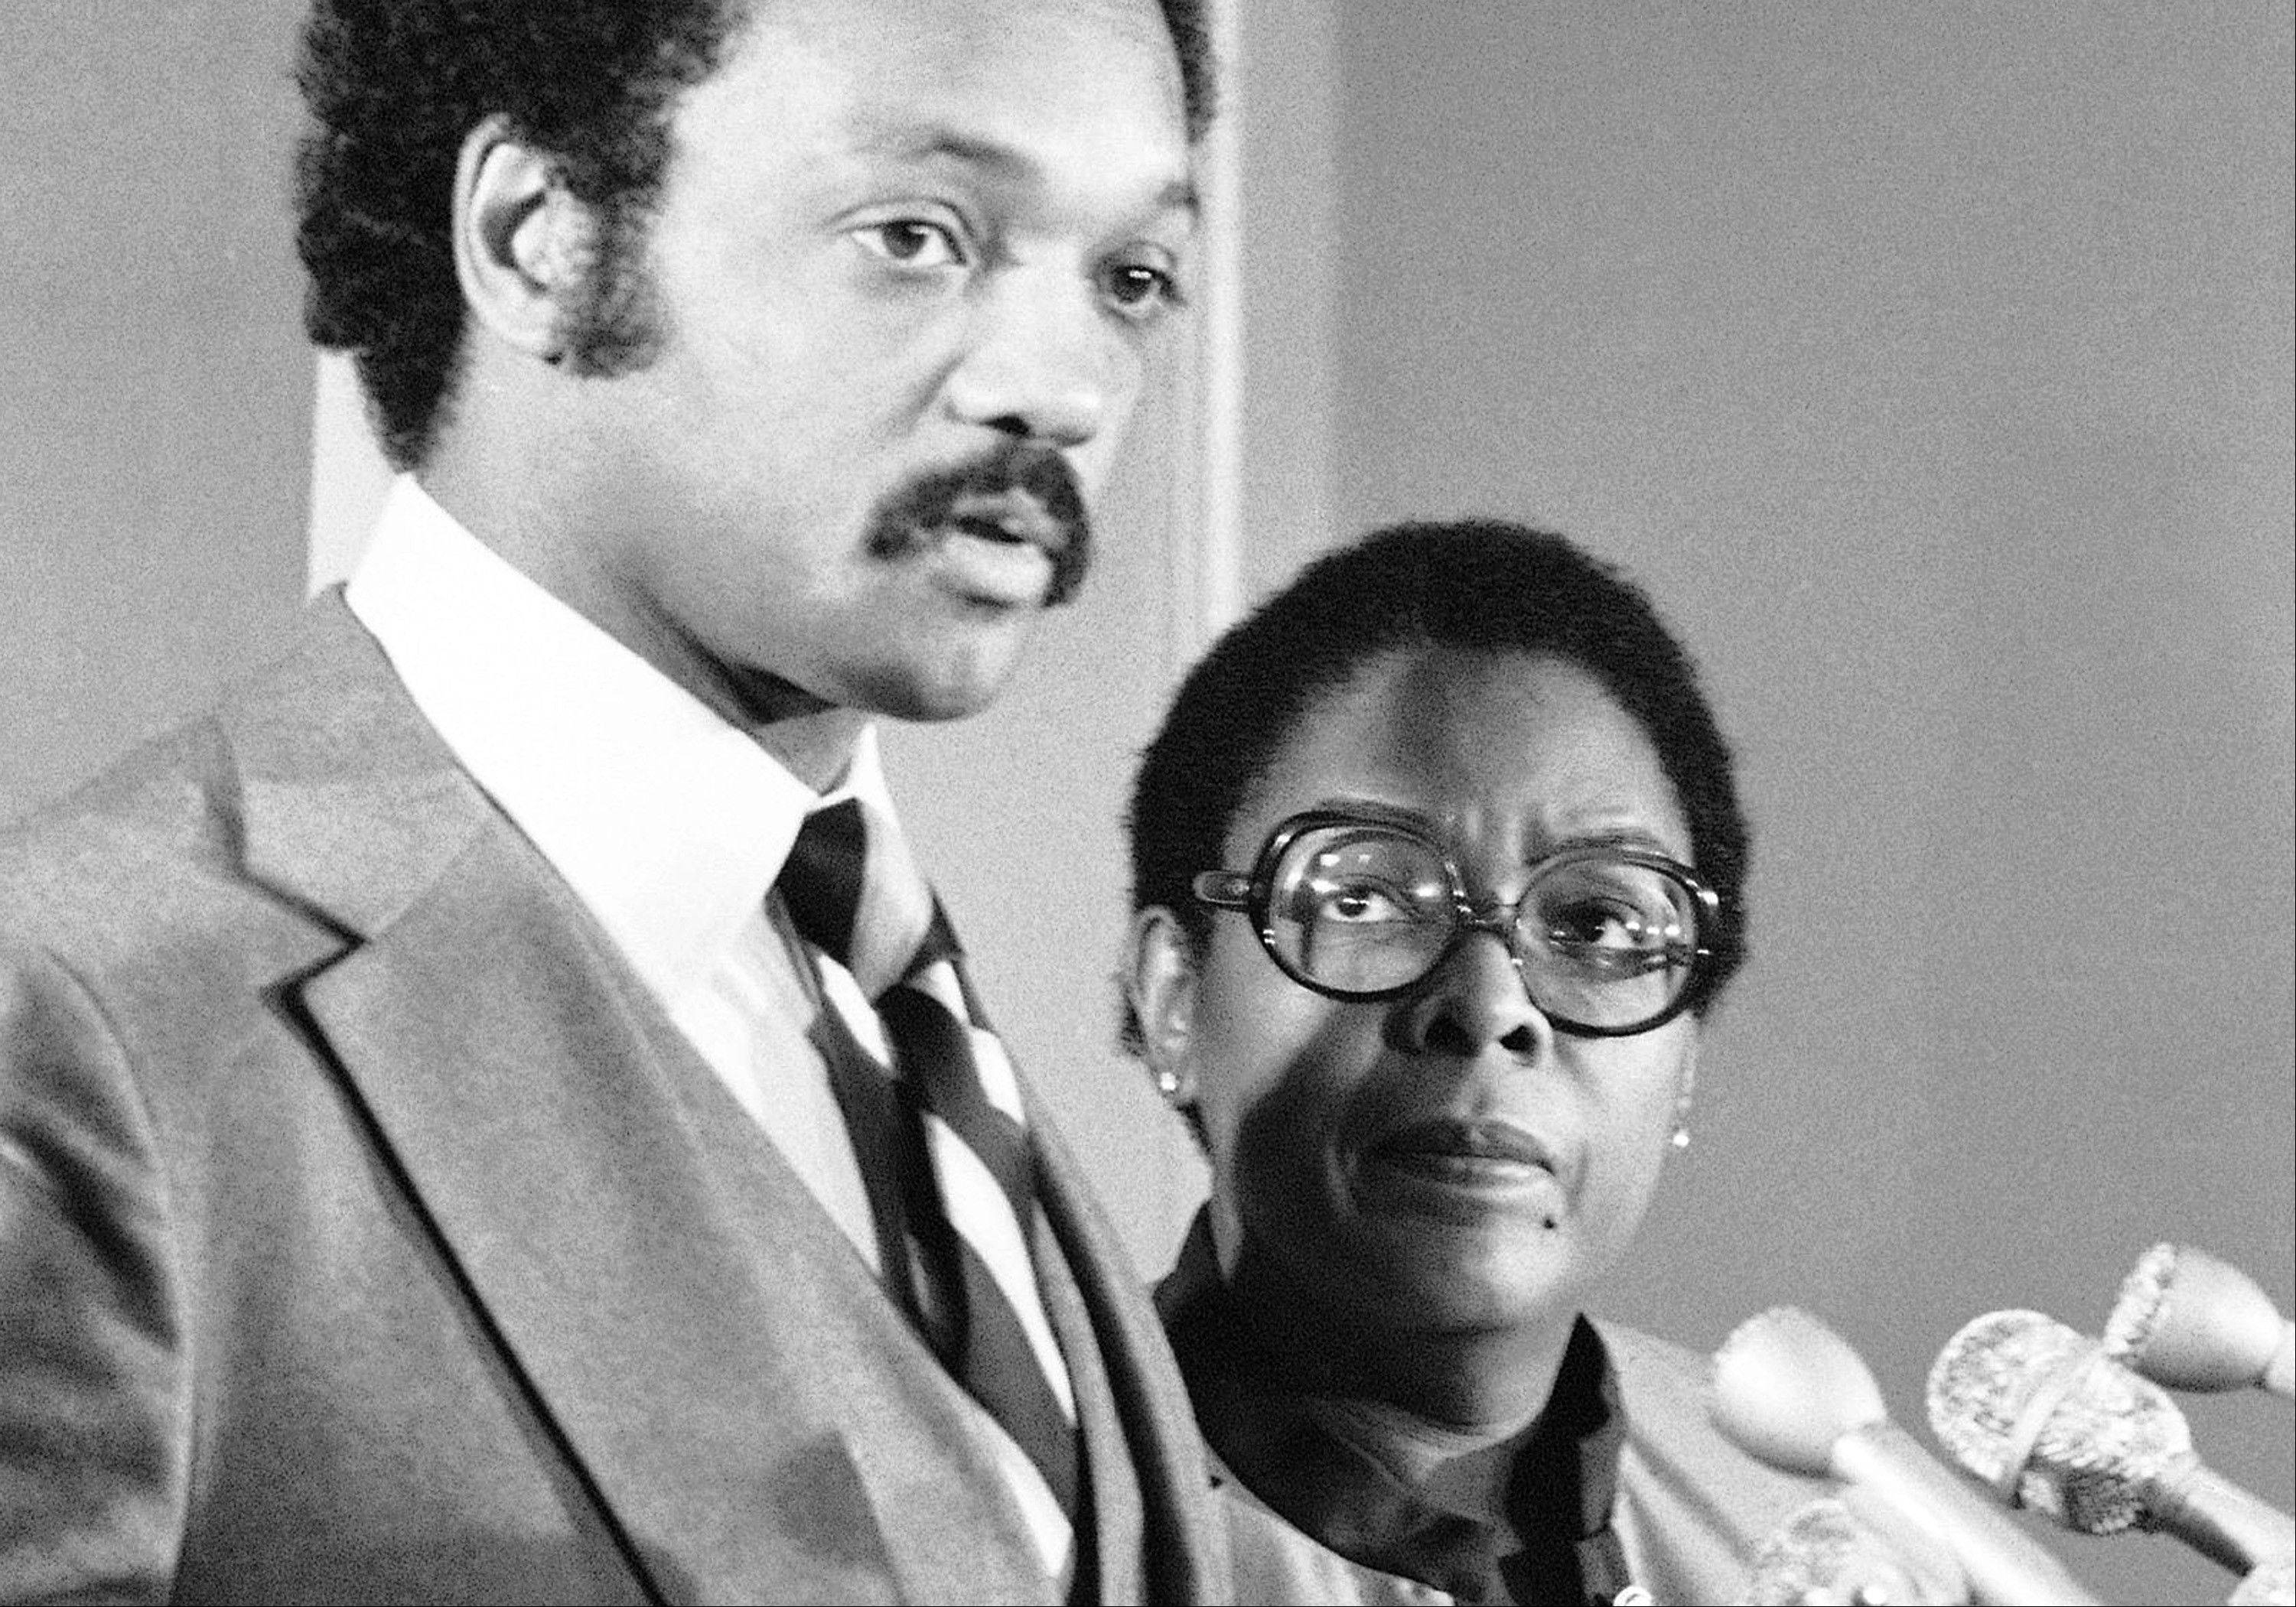 In this Nov. 12, 1980, file photo former Congresswoman Cardiss Collins, right, appears at a news conference with the Rev. Jesse Jackson in Washington. Collins, the first African-American woman to represent Illinois in Congress, died Sunday, Feb. 3, 2013 of complications from pneumonia at a Virginia hospital, a family friend announced on Tuesday, Feb. 5.